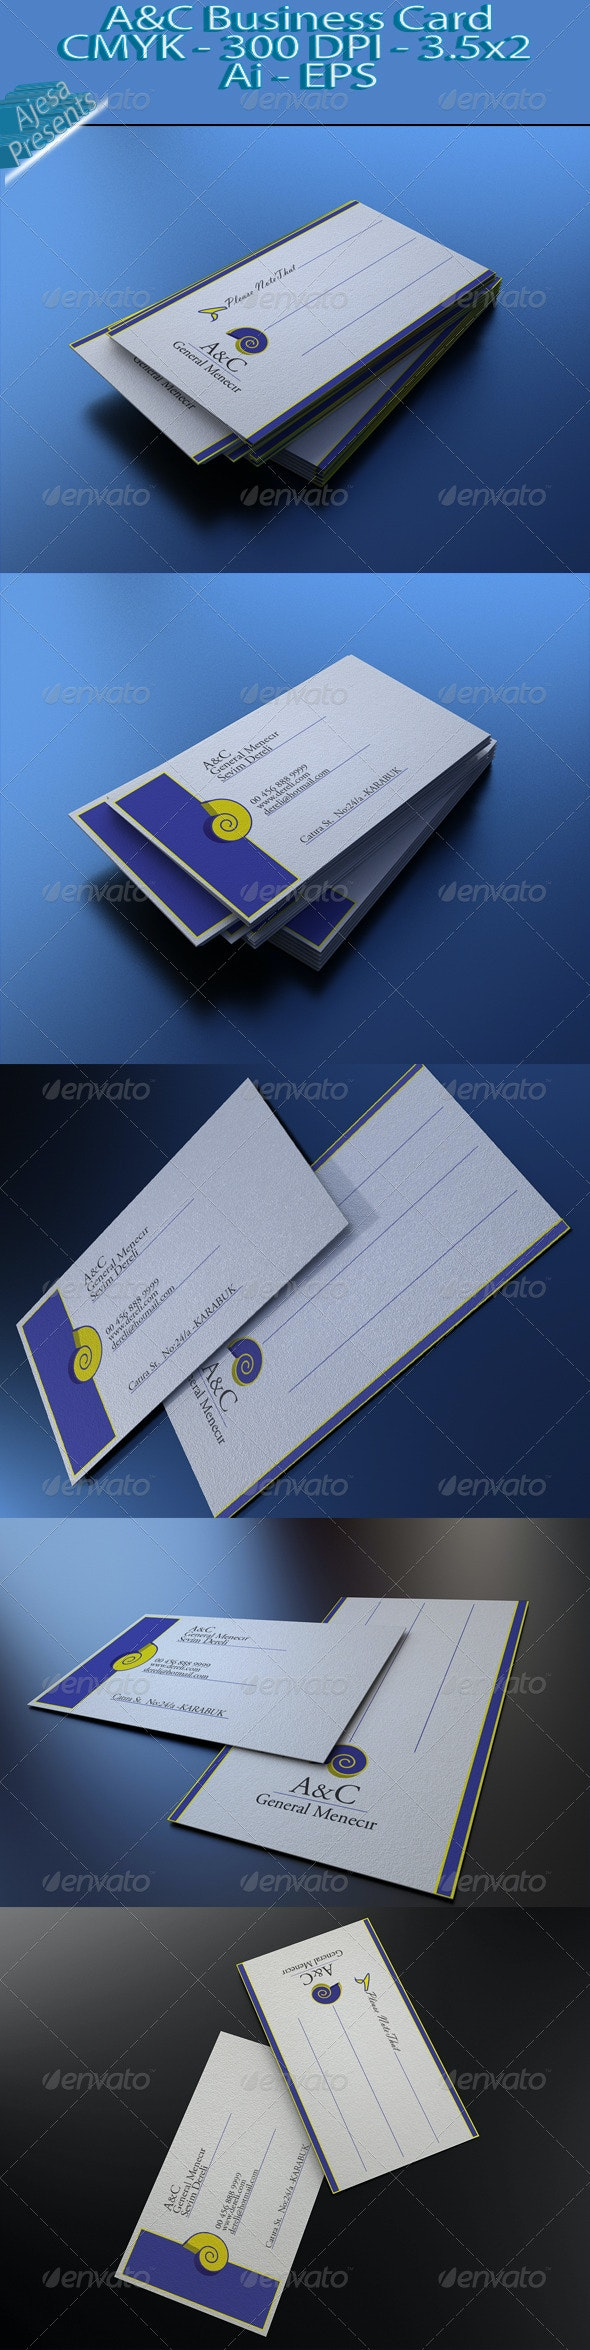 P&T Business Card - Business Cards Print Templates